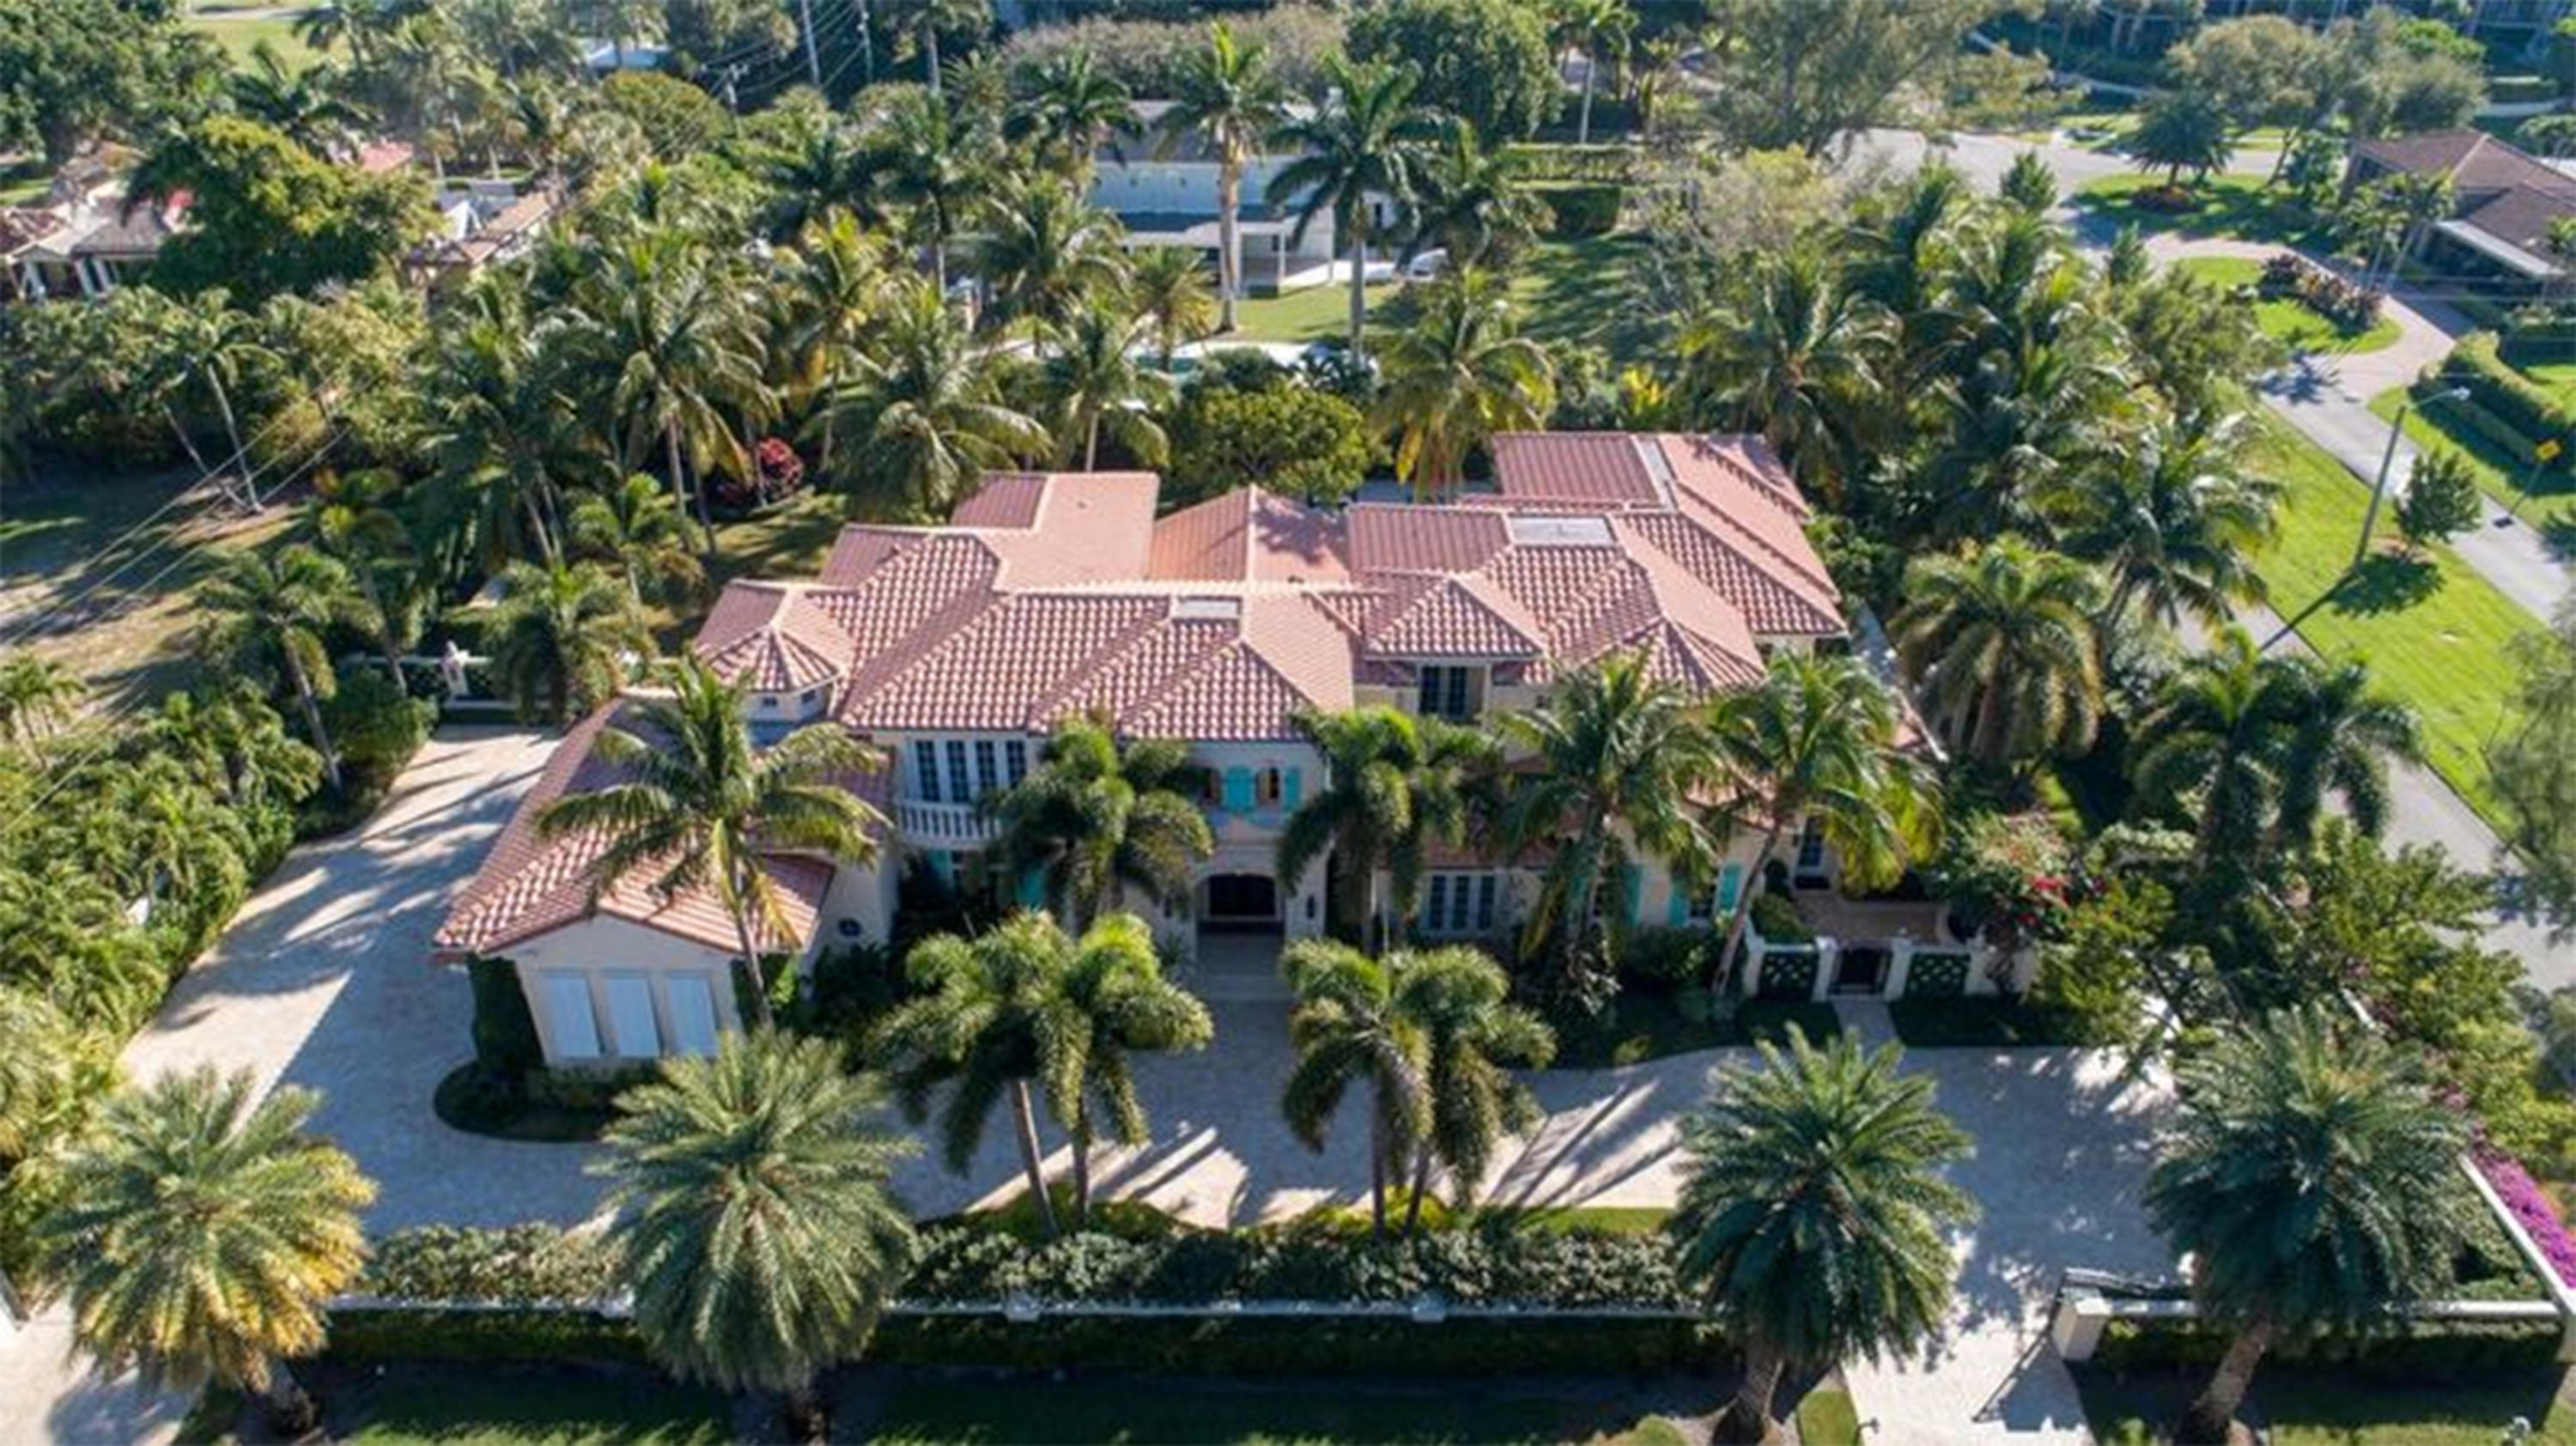 Home for sale in The Estate Section Boca Raton Florida